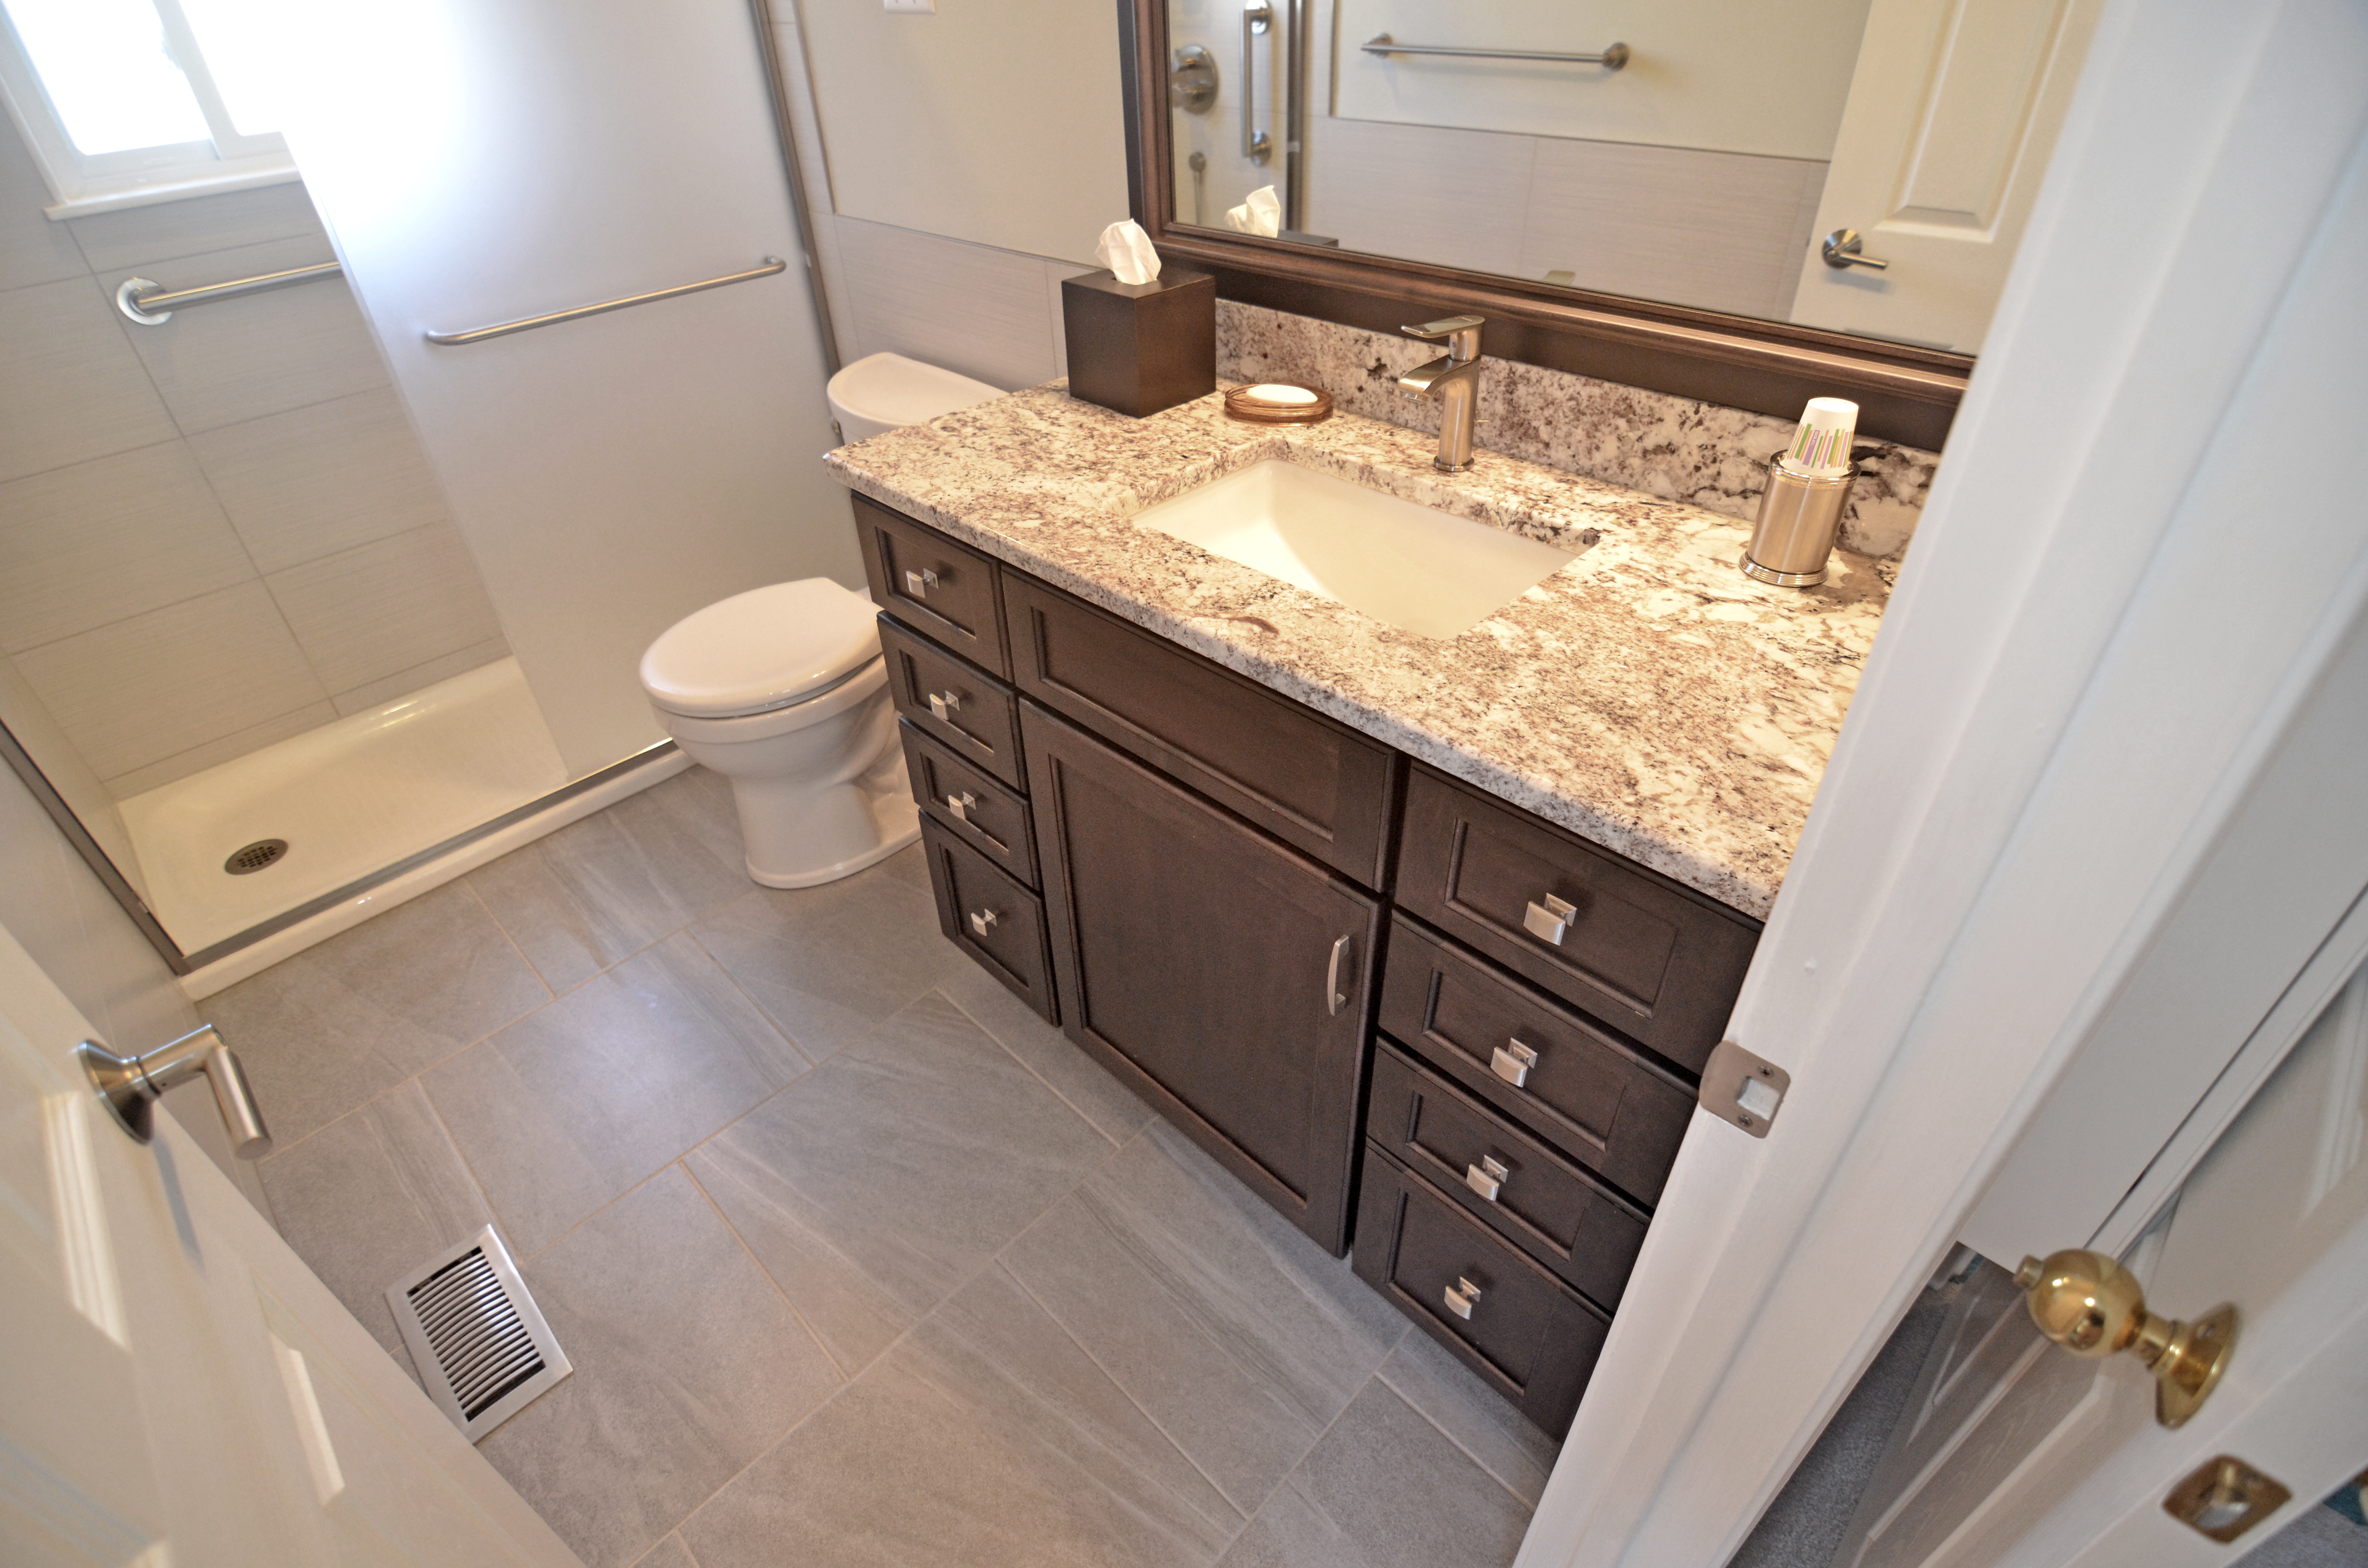 Bathroom Remodeling Cherry Hill Nj New Jersey Bathroom Remodeling - Bathroom remodeling cherry hill nj